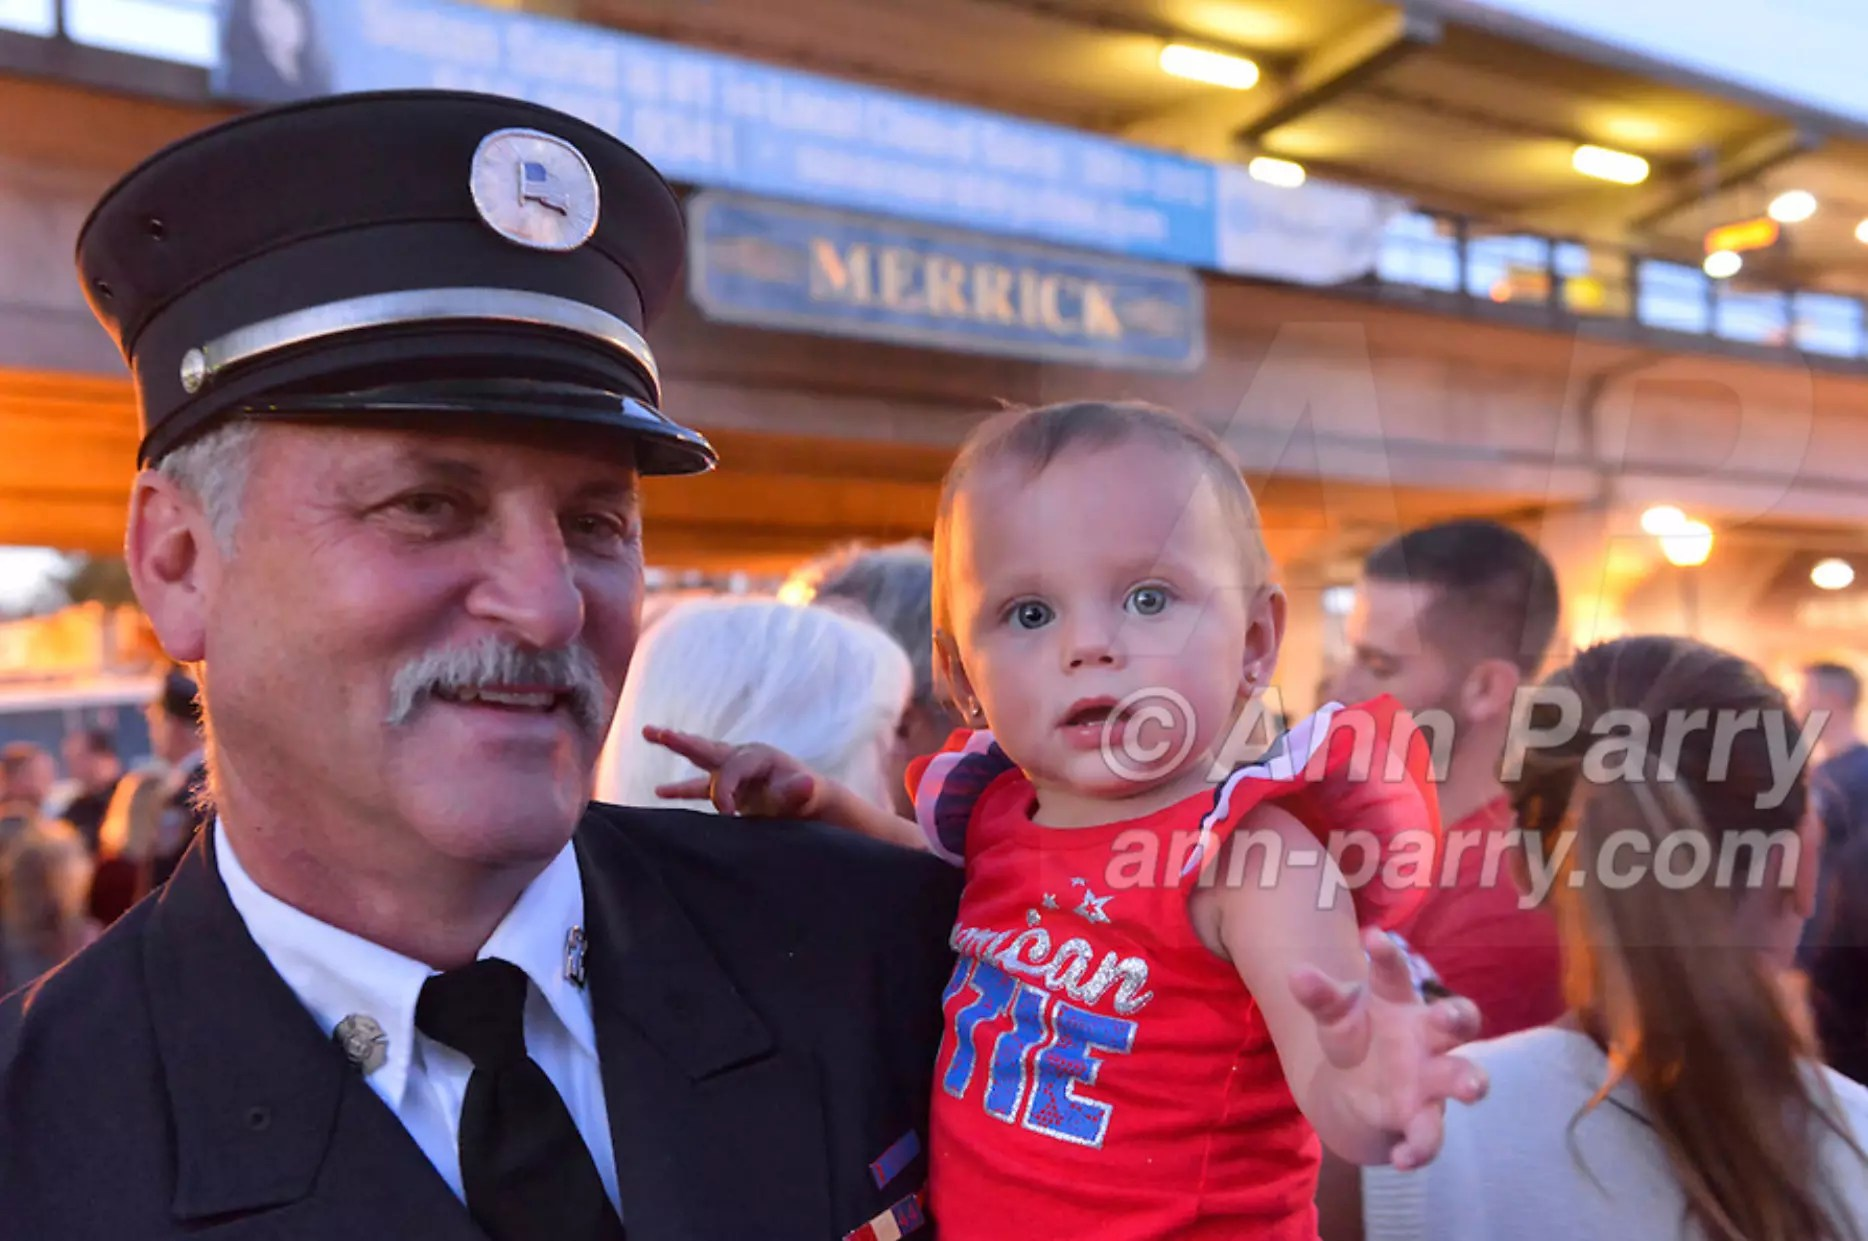 Merrick, NY, USA. Sept. 11, 2015. RILEY E. GIES, one-year-old granddaughter of Fire Chief Ronnie E Gies who died responding to 9/11 NYC Terrorist Attack, is held by CRAIG MALTZ, a Bellmore volunteer firefighter, at Merrick Memorial Ceremony for Merrick volunteer firefighters and residents who died due to 9/11 terrorist attack at NYC Twin Towers. Ex-Chief Ronnie E. Gies of Merrick F.D. and FDNY Squad 288, and Ex-Captain Brian E. Sweeney, of Merrick F.D. and FDNY Rescue 1, died responding to the attacks on September 11, 2001.